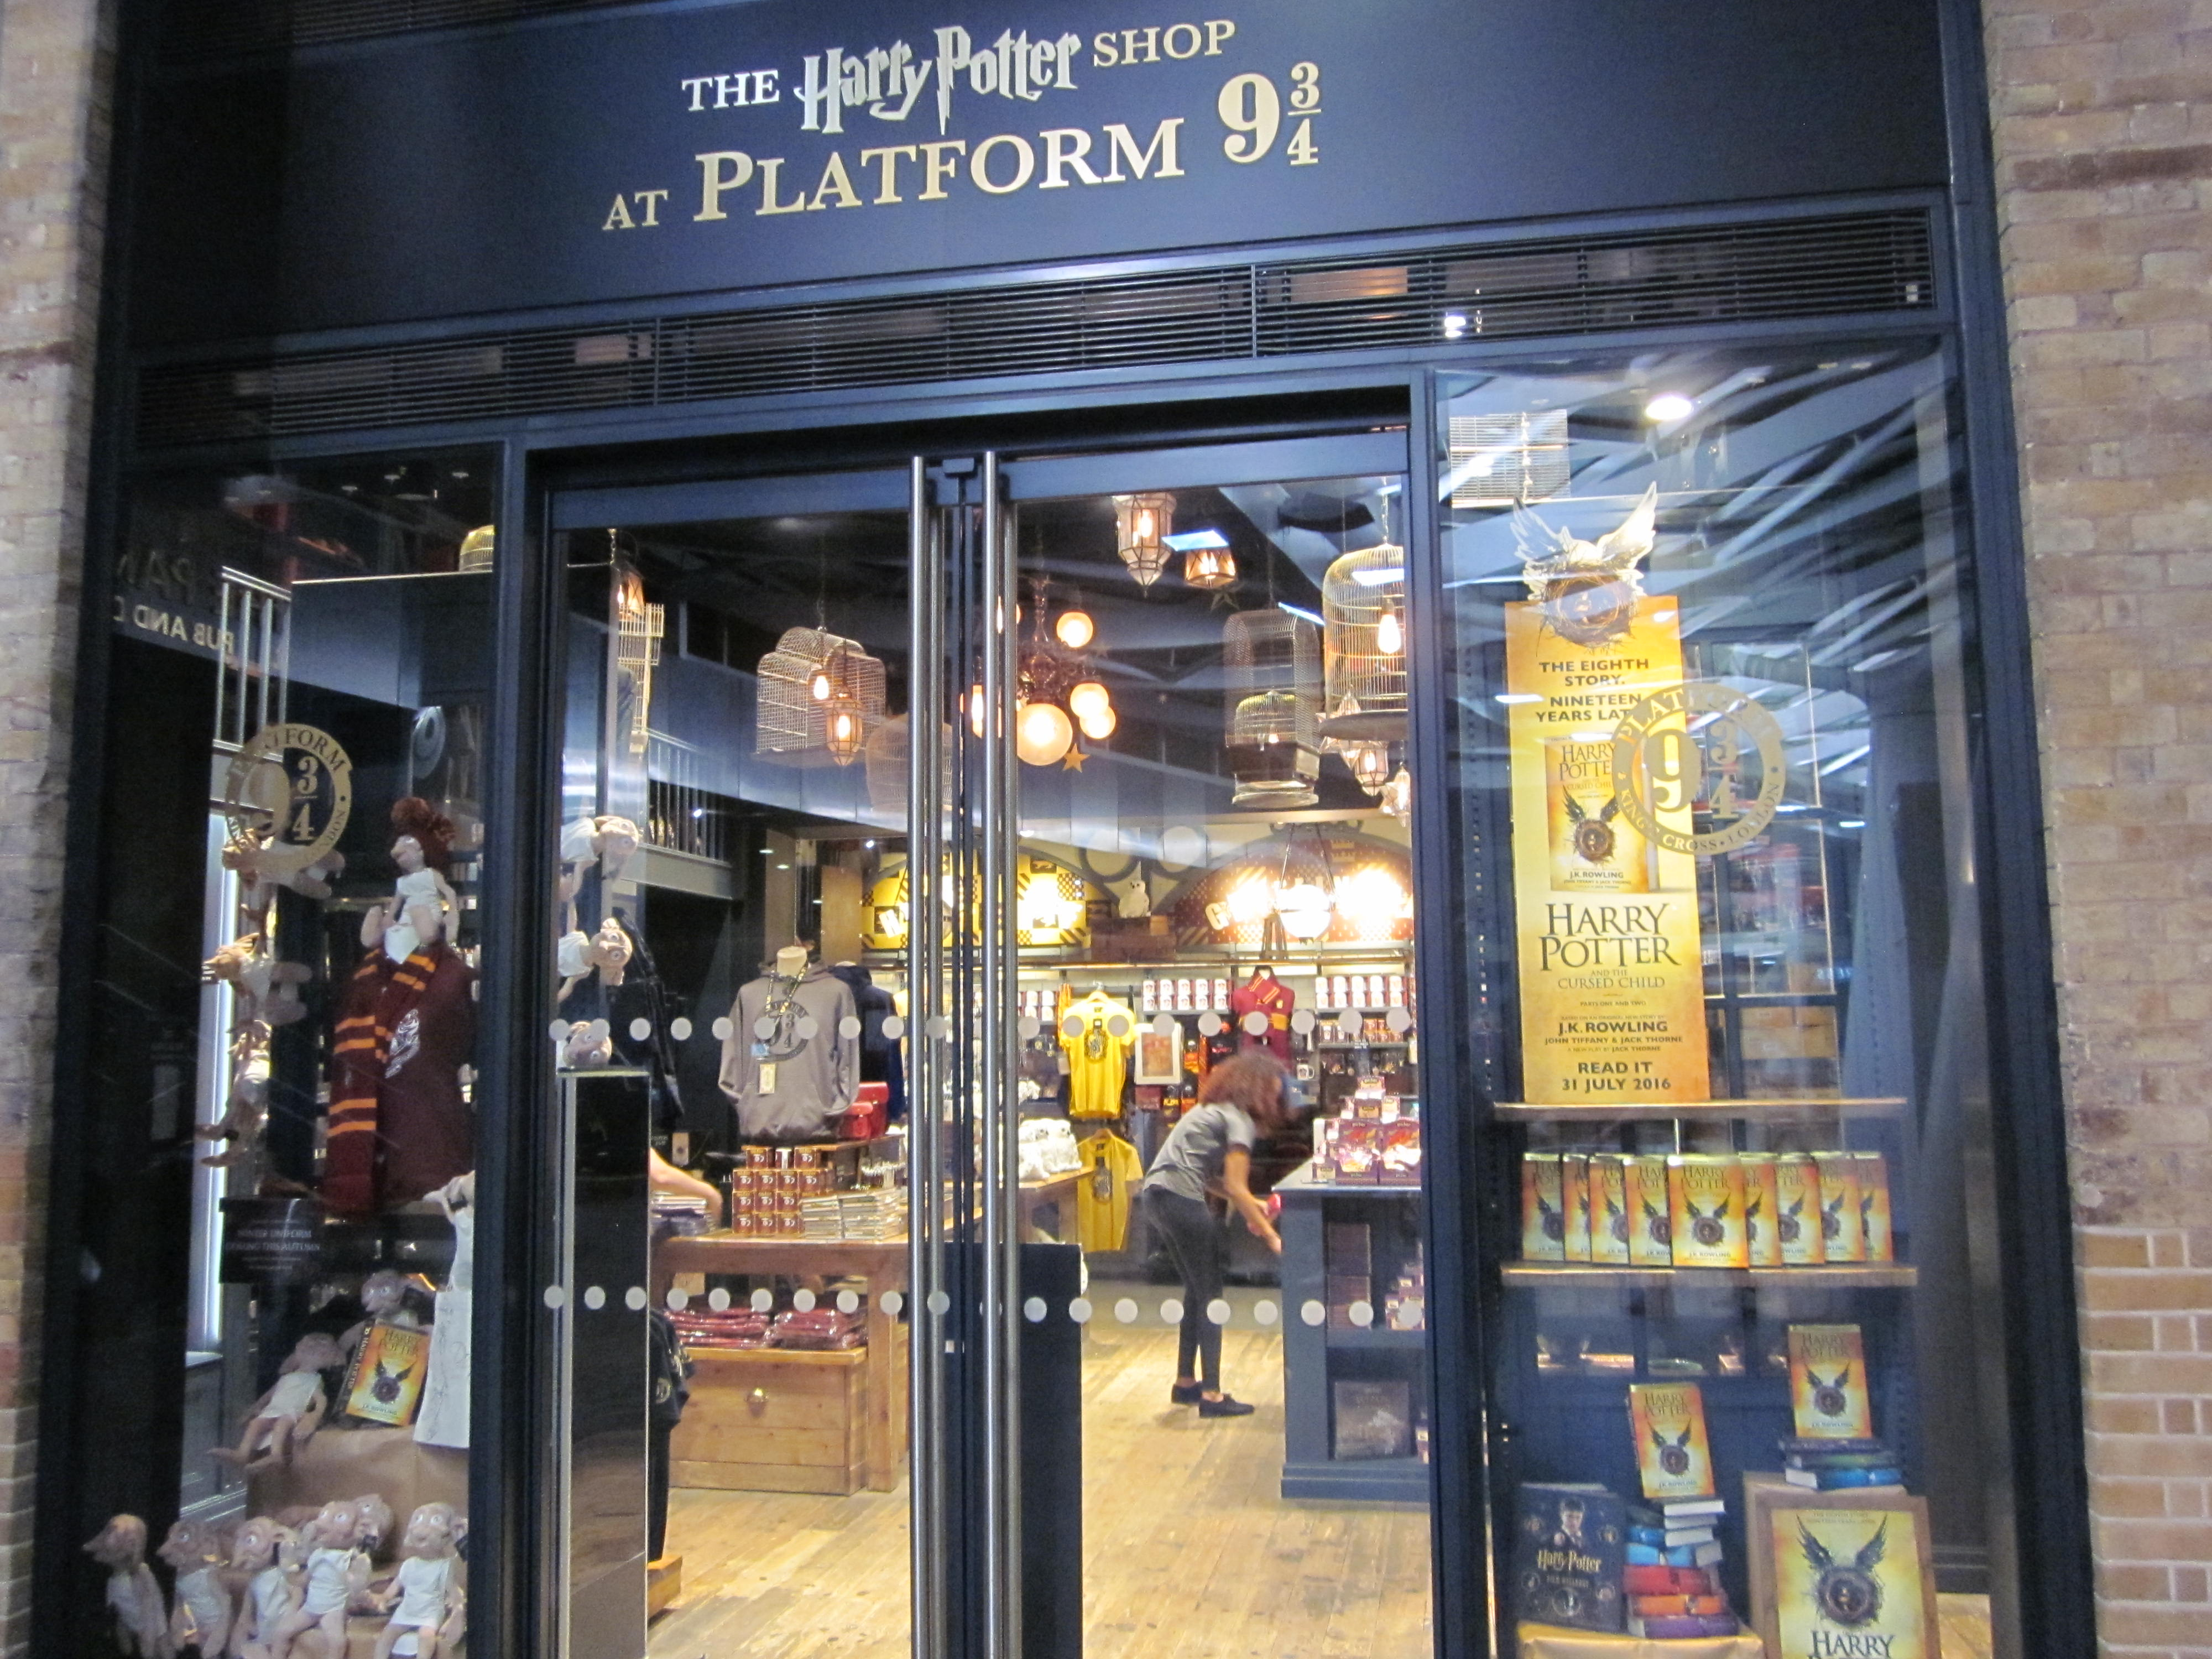 harry potter london platform 9 3/4 souvenir shop king's cross jean above the clouds